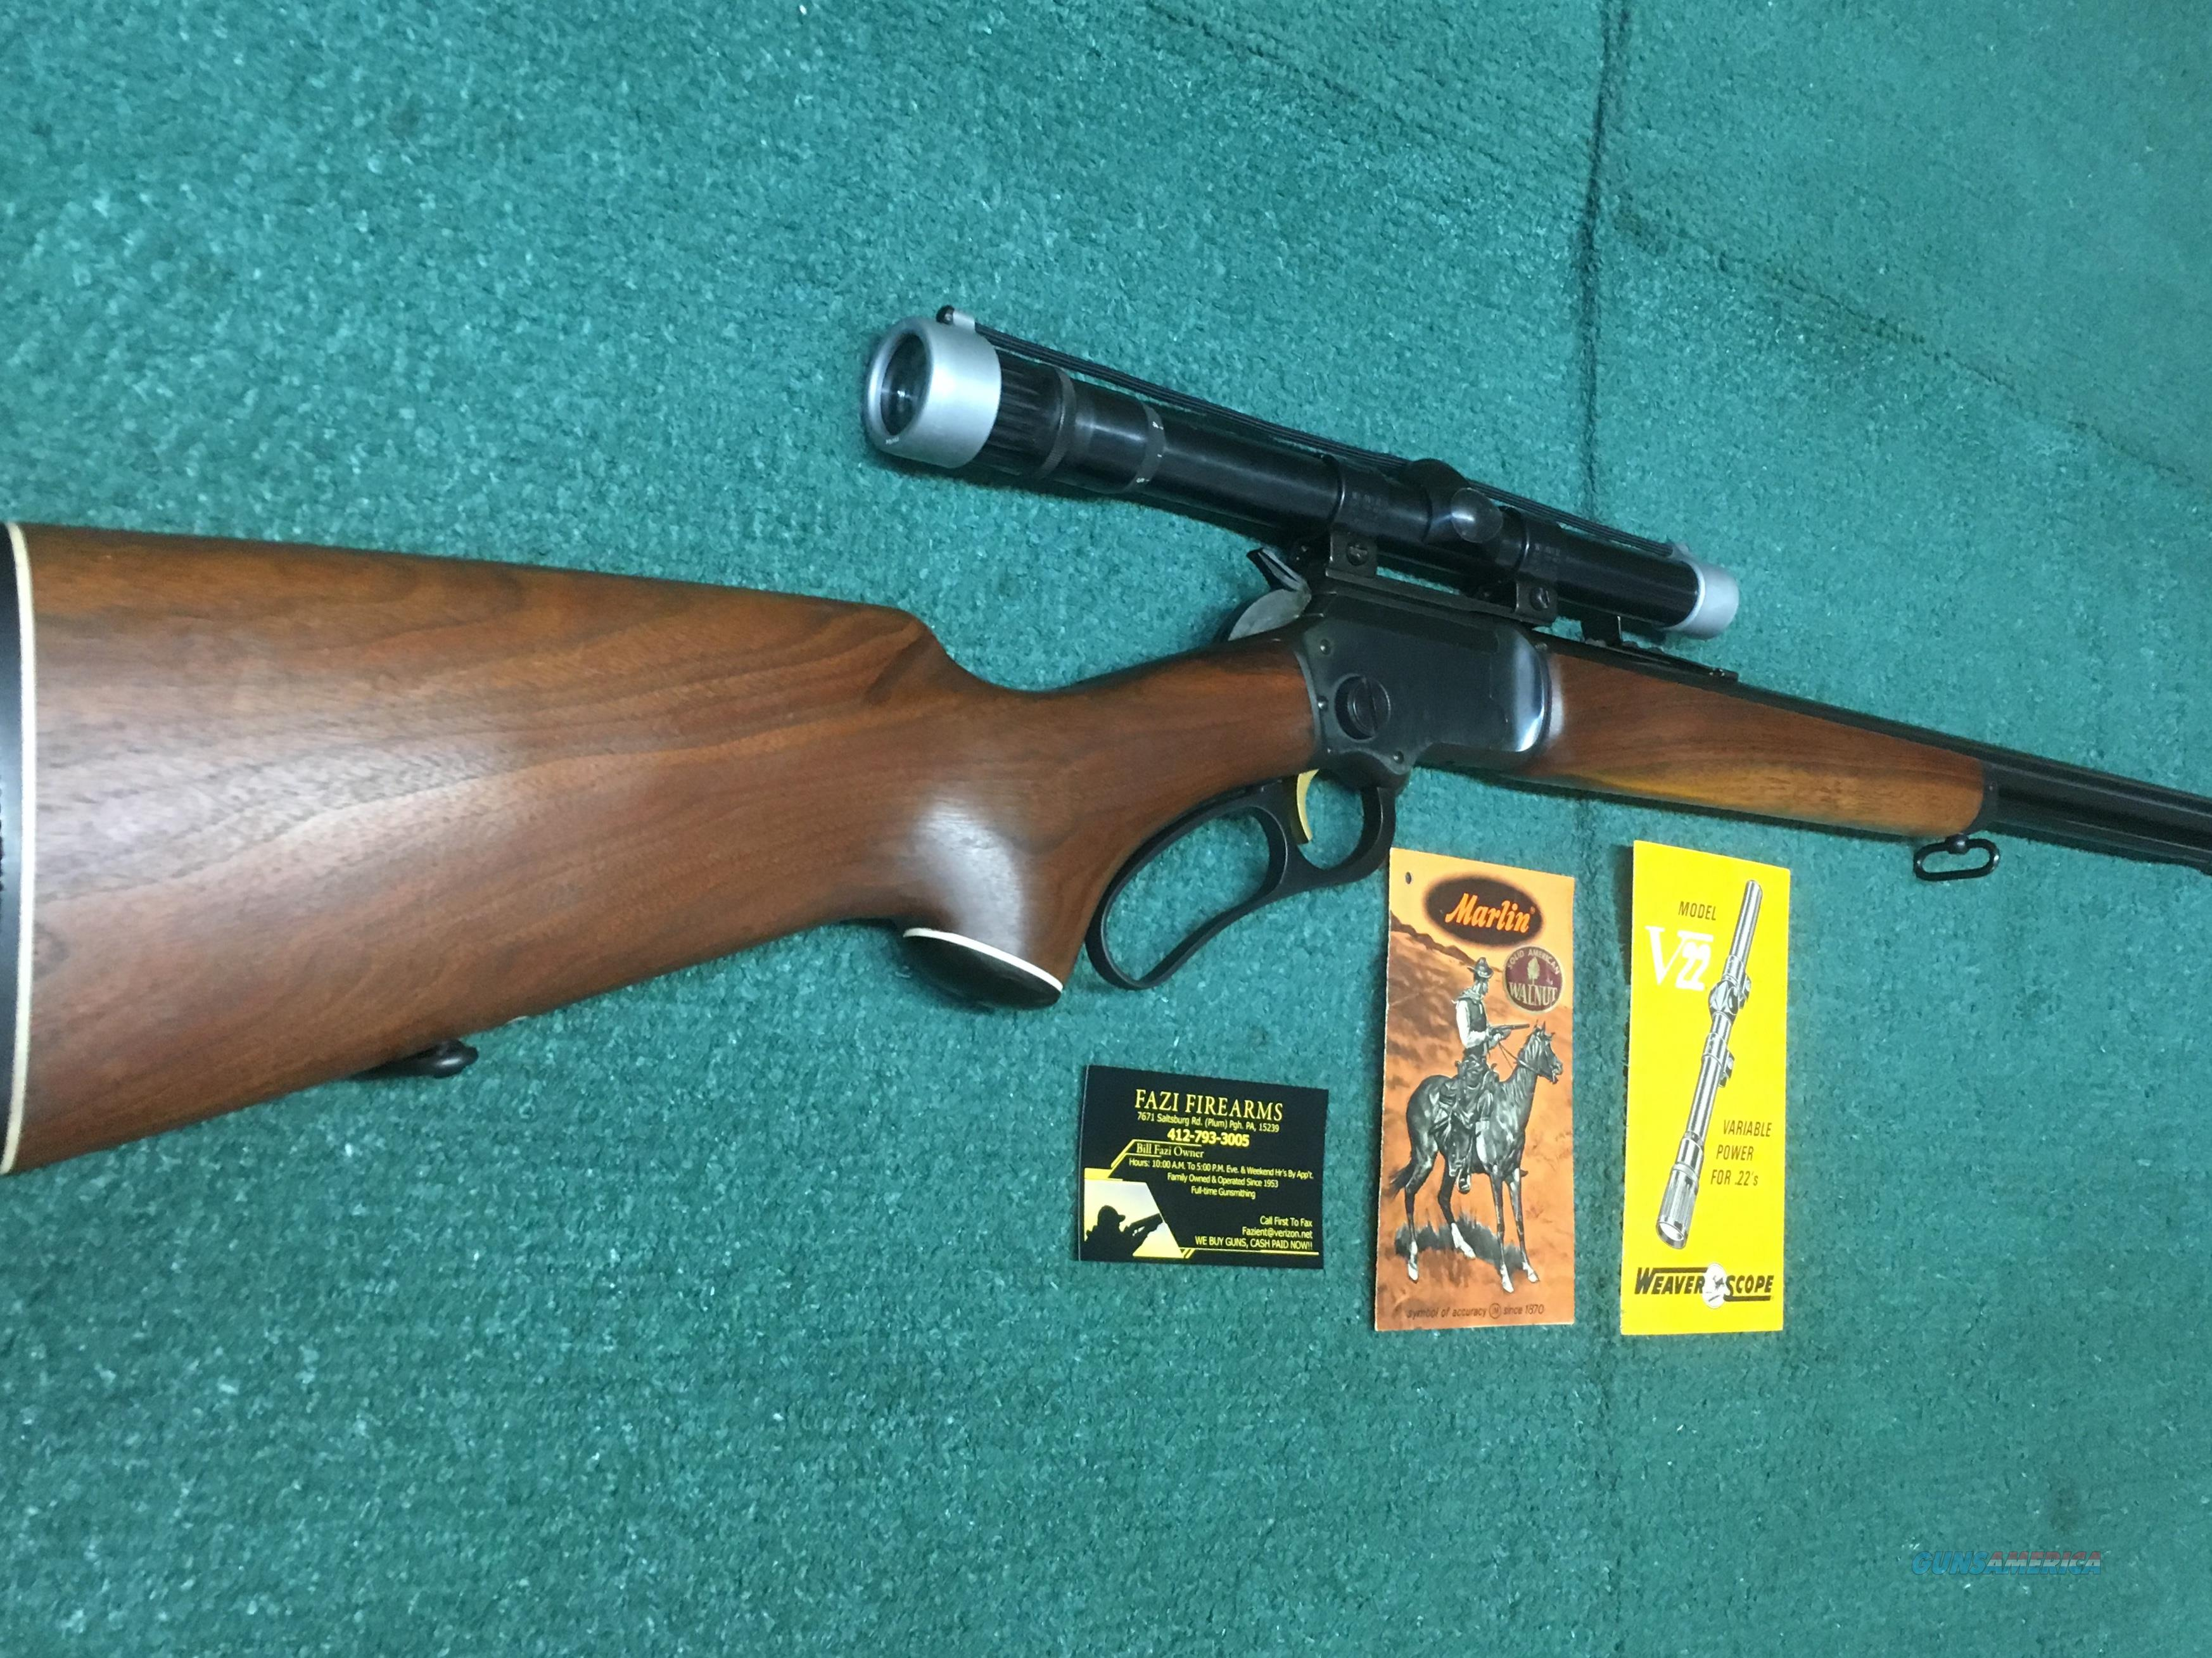 Marlin Golden 39A .22LR Lever Action Rifle With Weaver V-22 3x6 Variable Power Vintage Scope  Guns > Rifles > Marlin Rifles > Modern > Lever Action